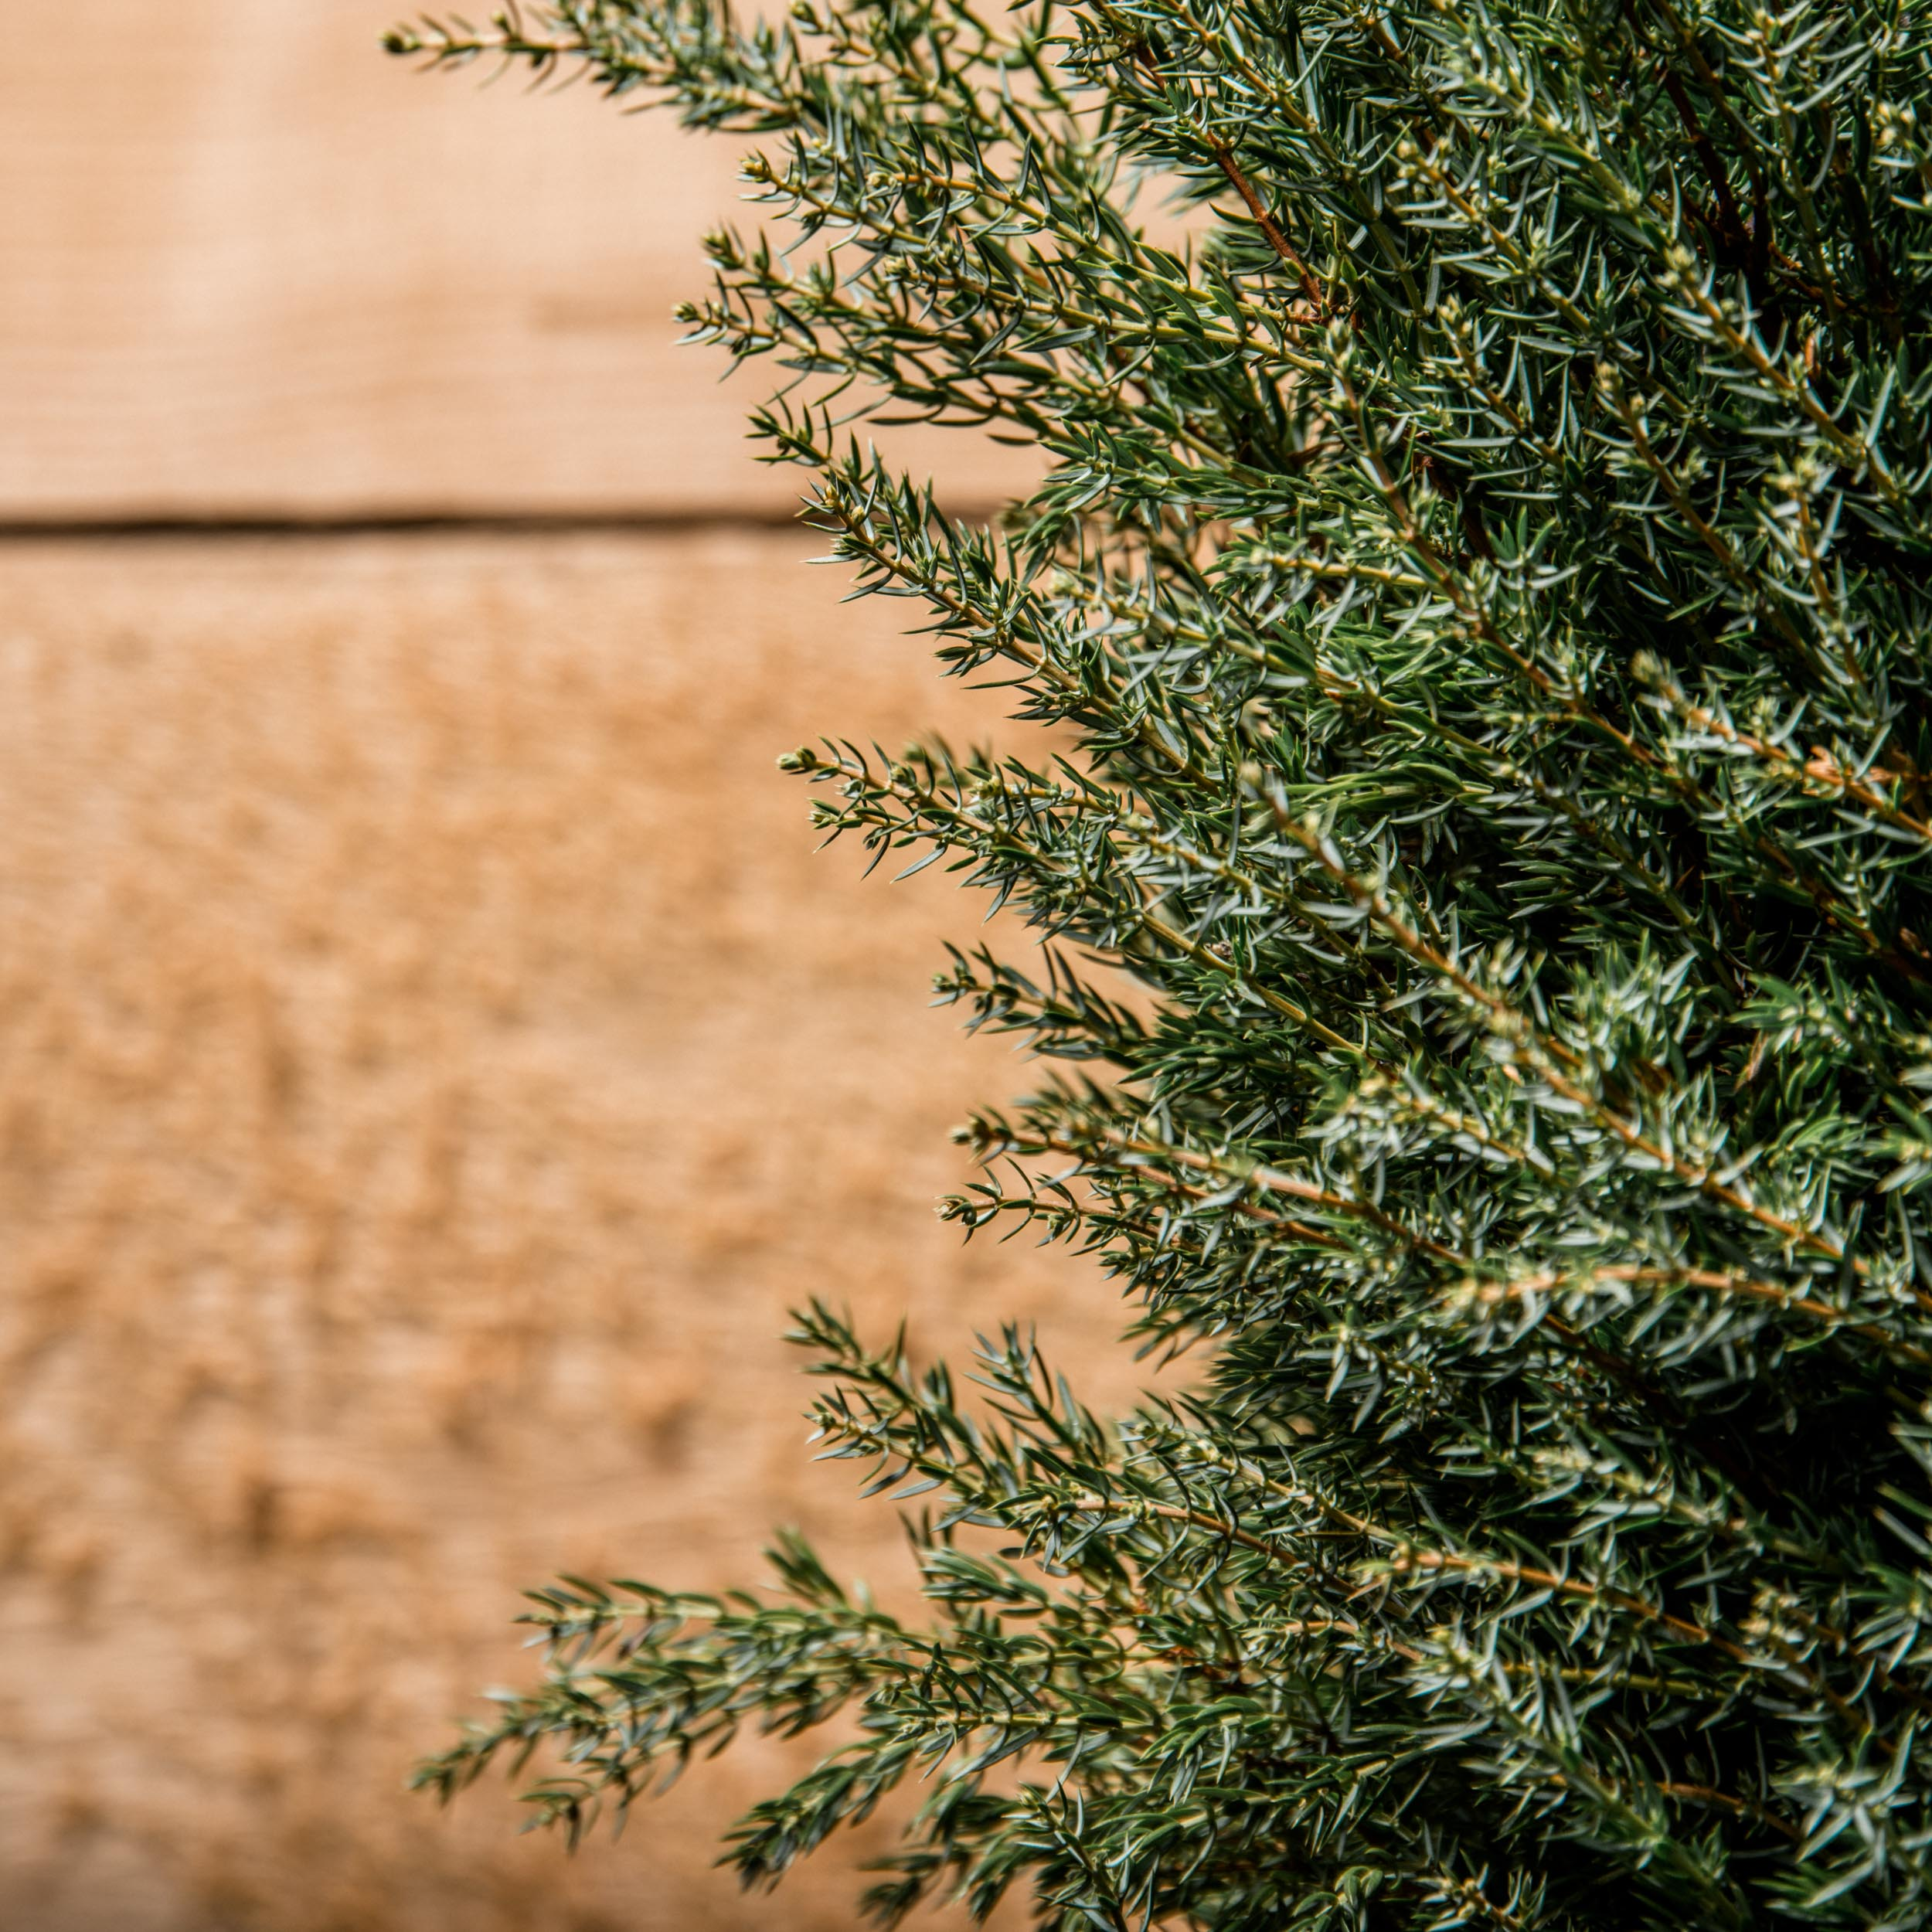 Relieving Juniper G Cone Baltimore Valley 1532 G Cone Juniper Sale G Cone Juniper S houzz-02 Gold Cone Juniper